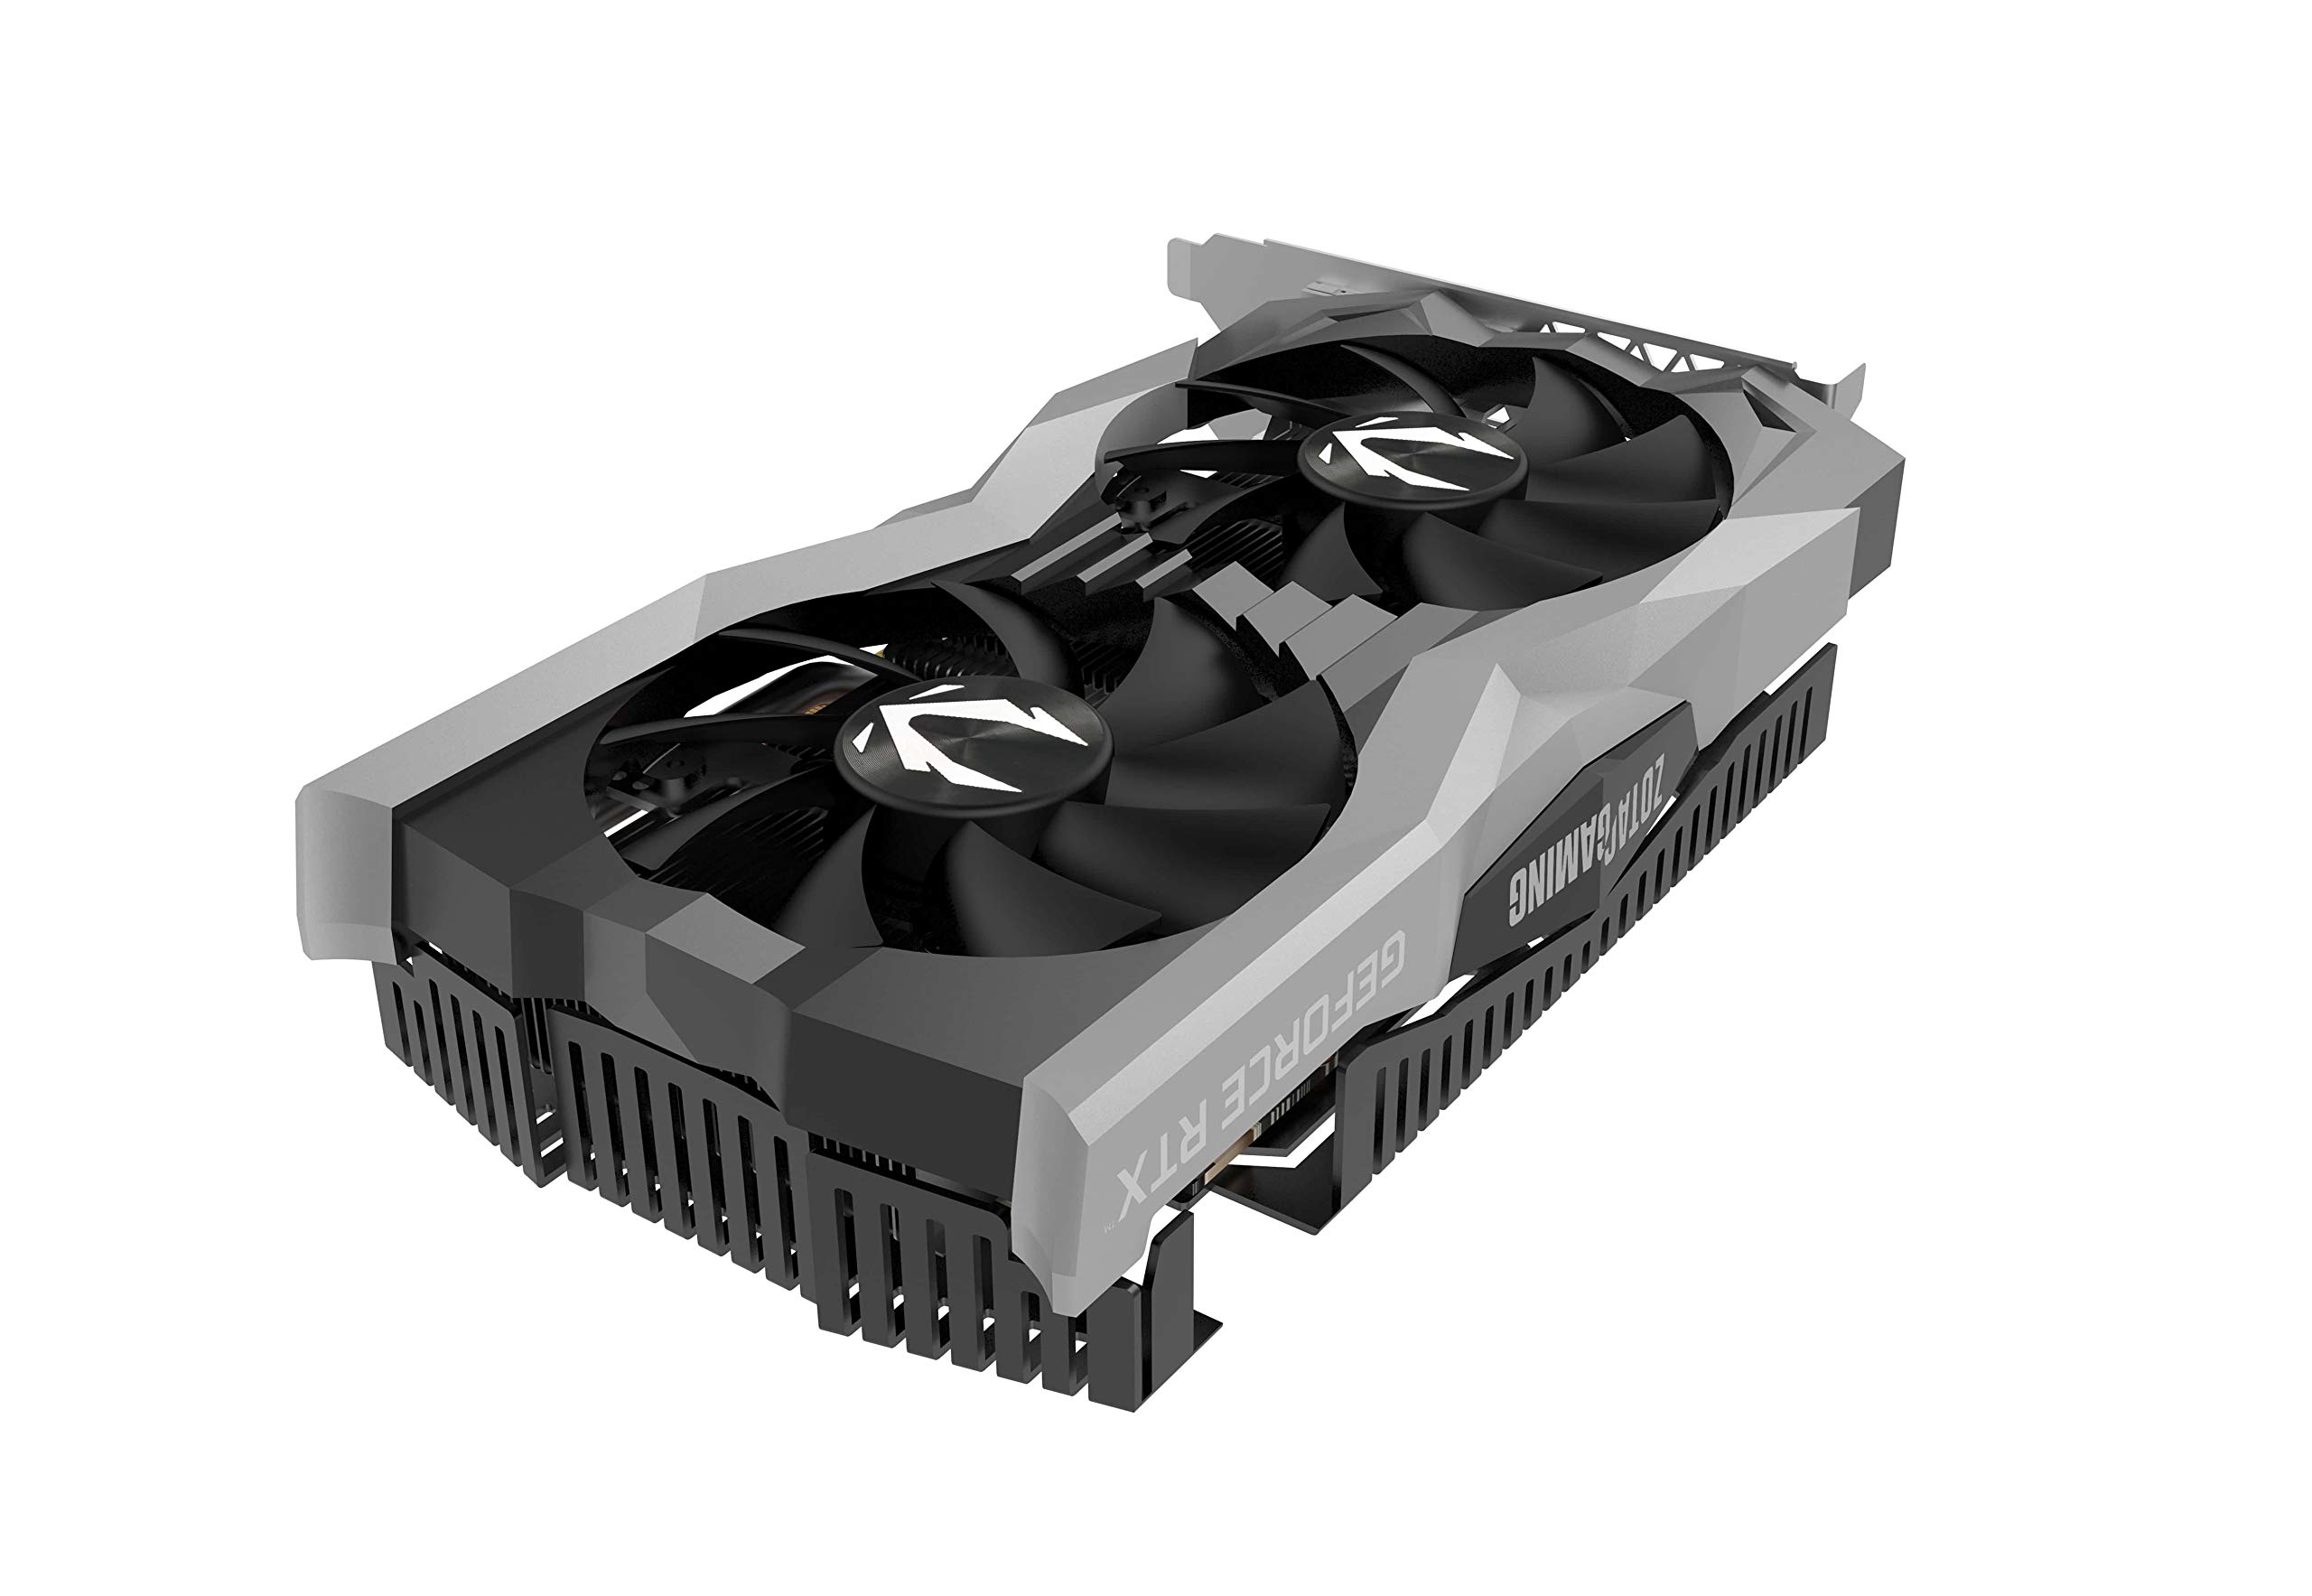 ZOTAC Gaming GeForce RTX 2060 Twin Fan 6GB GDDR6 192-bit Gaming Graphics Card, Super Compact, IceStorm 2.0, ZT-T20600F-10M by ZOTAC (Image #10)